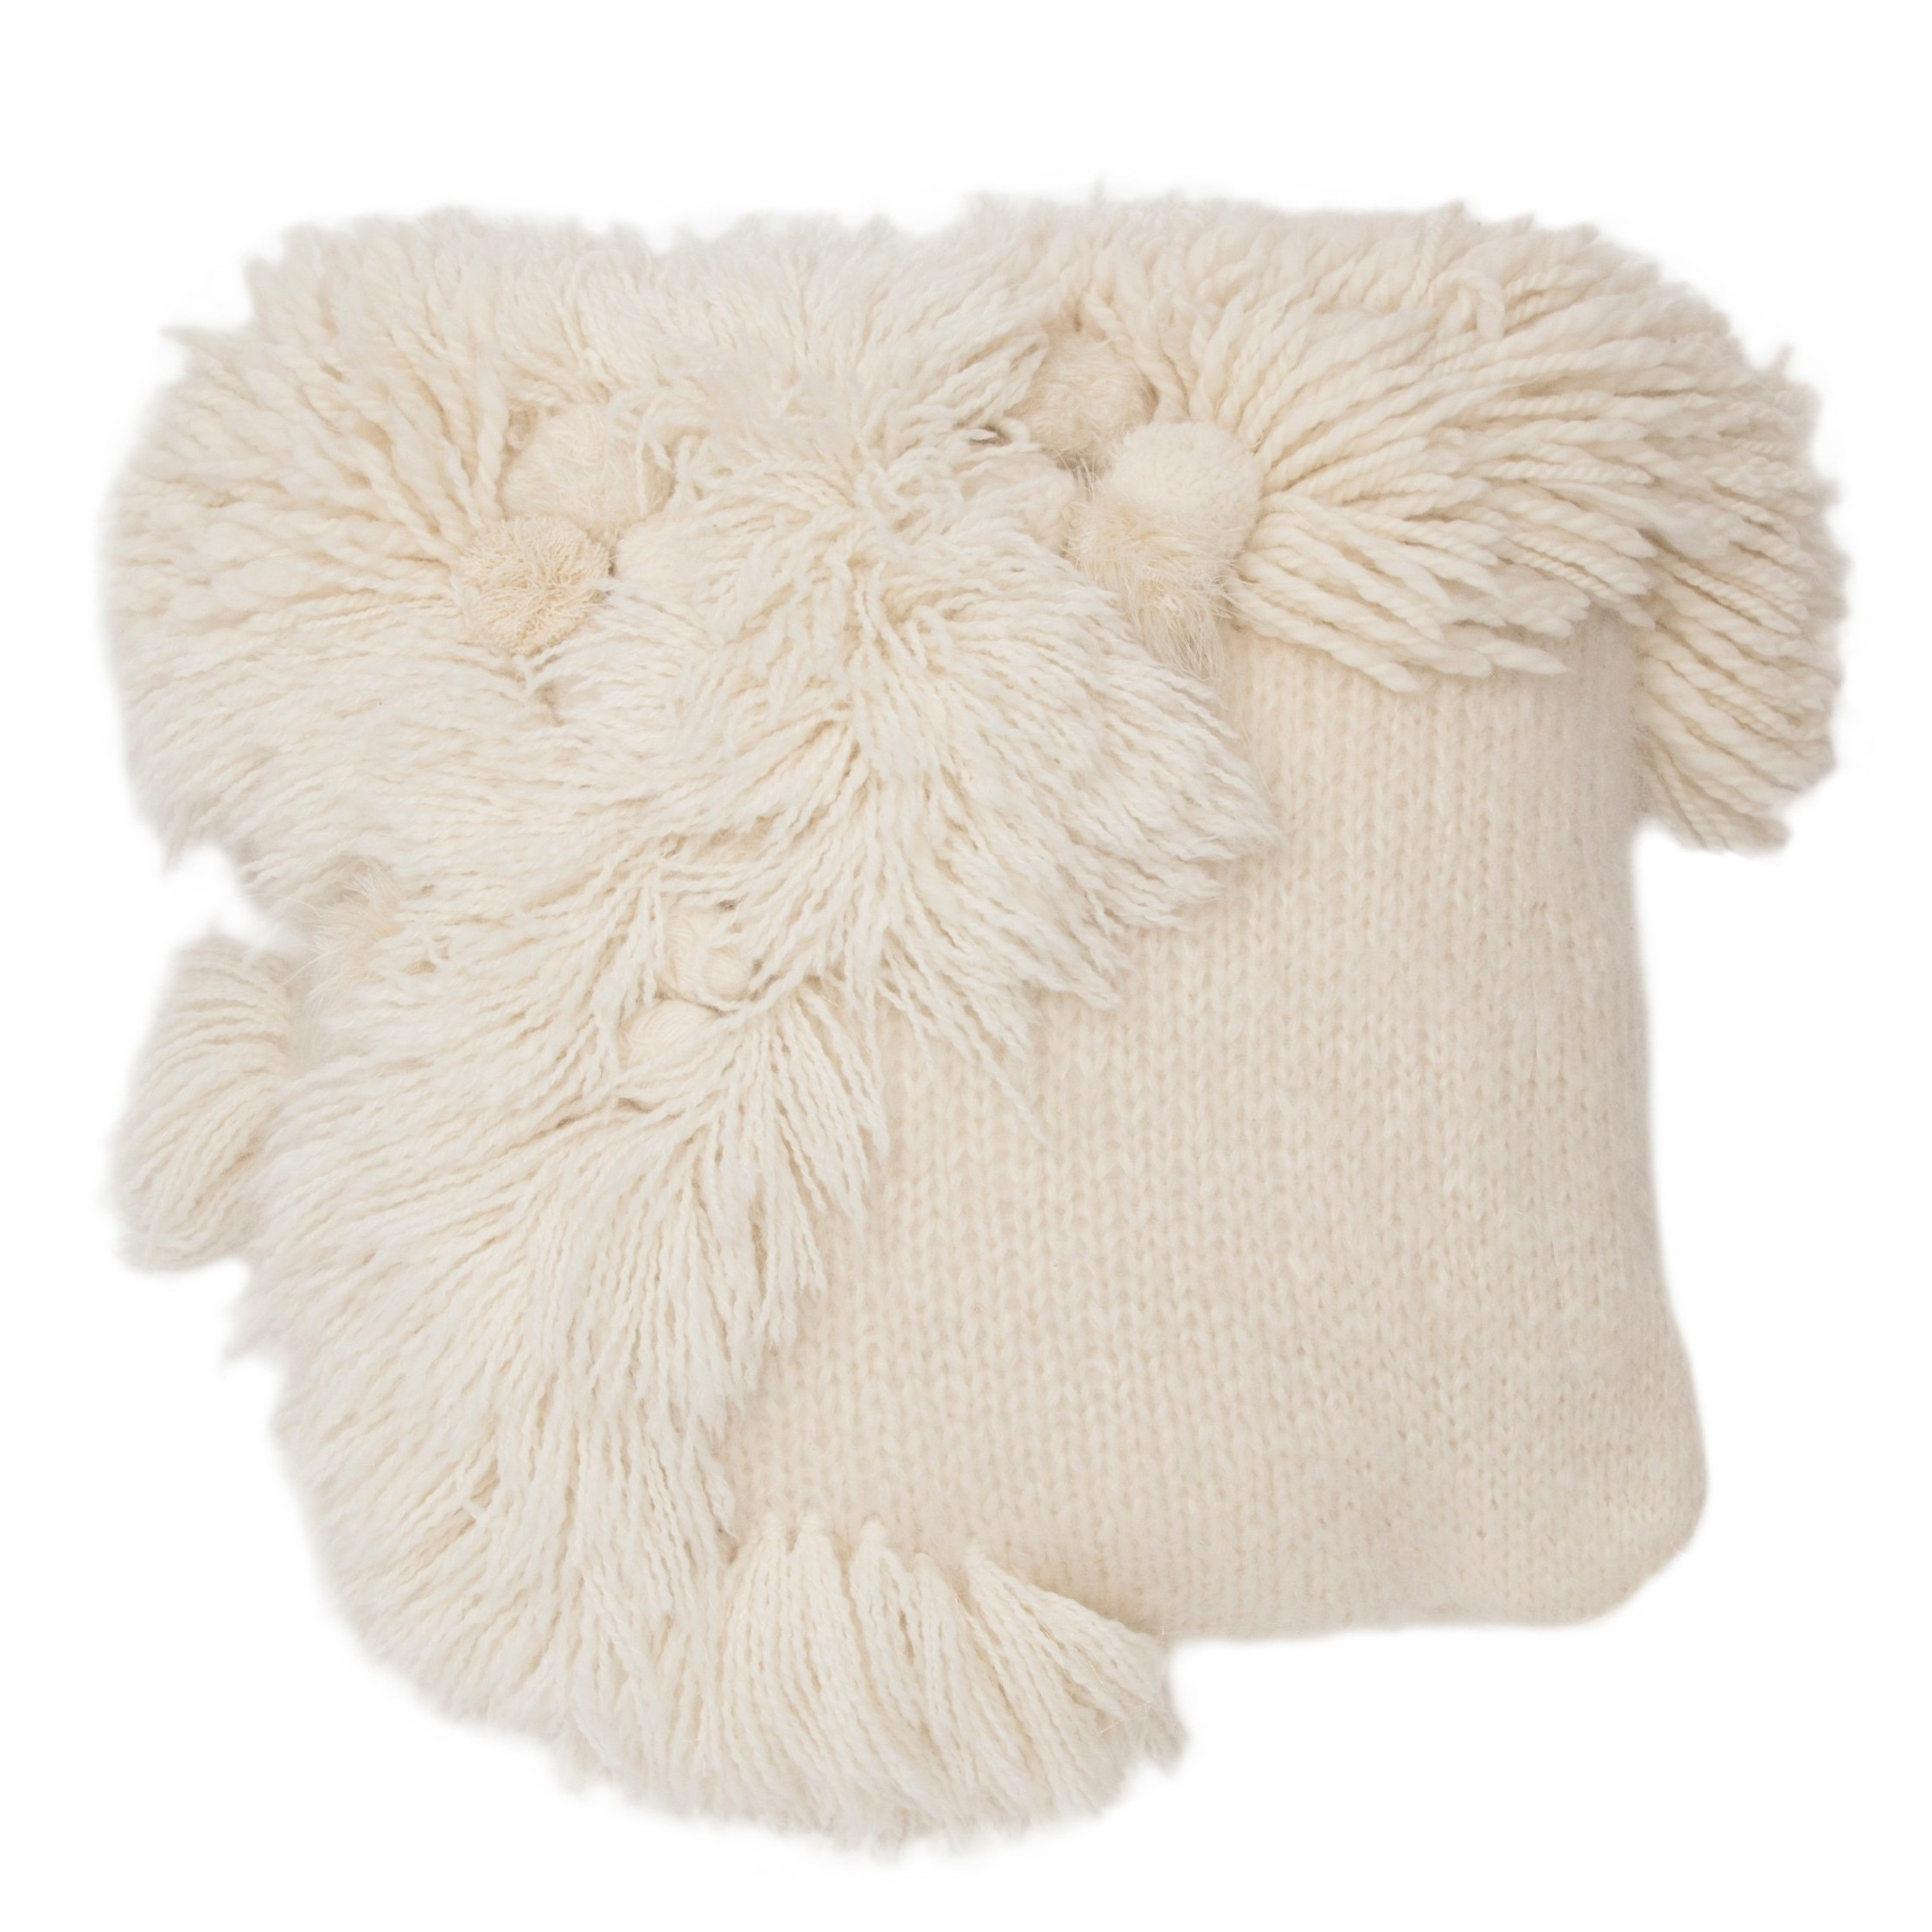 Tabula Rasa Alpaca-Mohair Throw Pillow $595